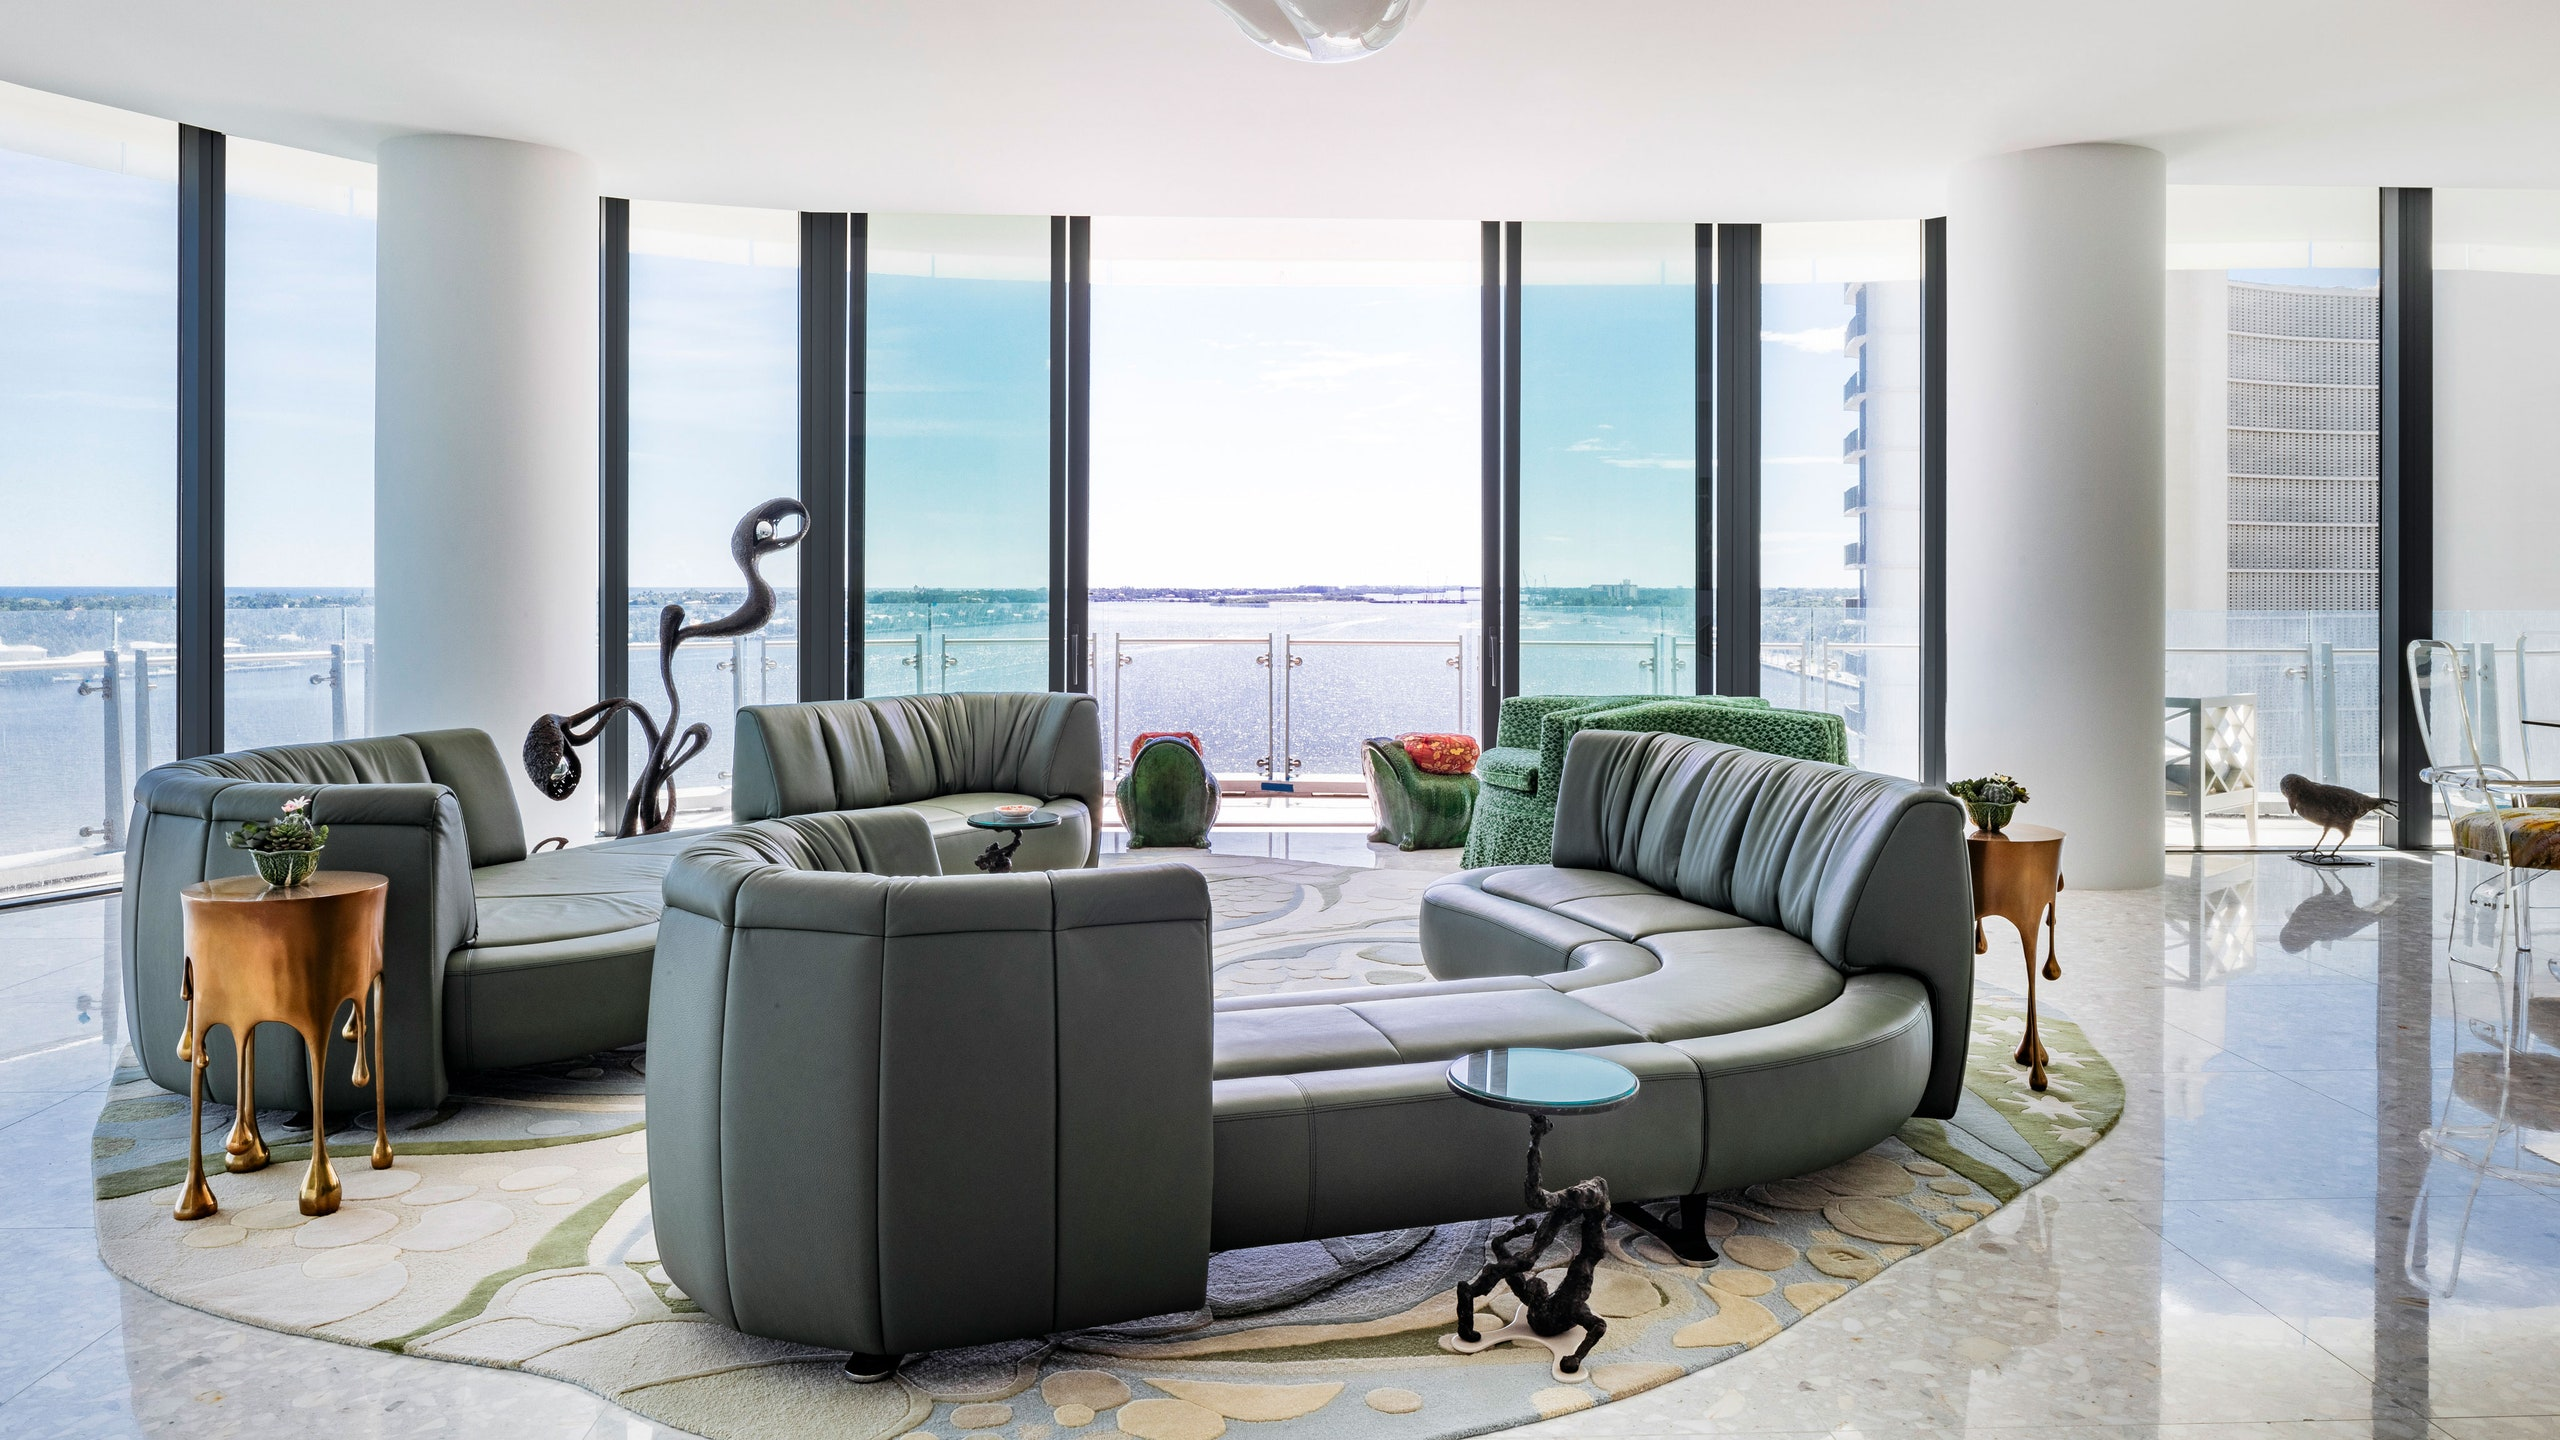 Best Things About Condo Living